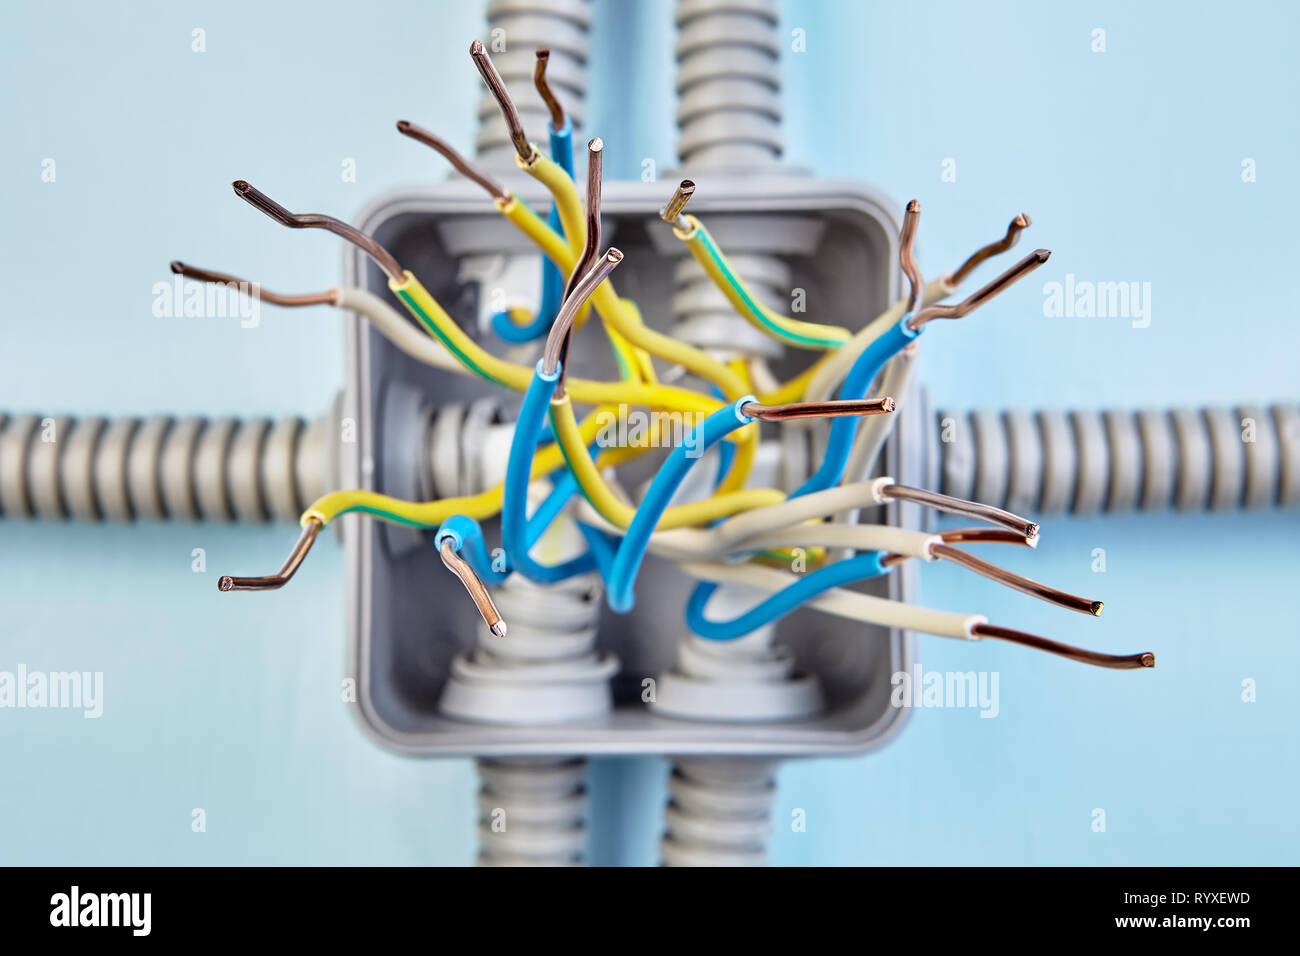 diagram of copper wiring of junction box, exposed wire ends, close up